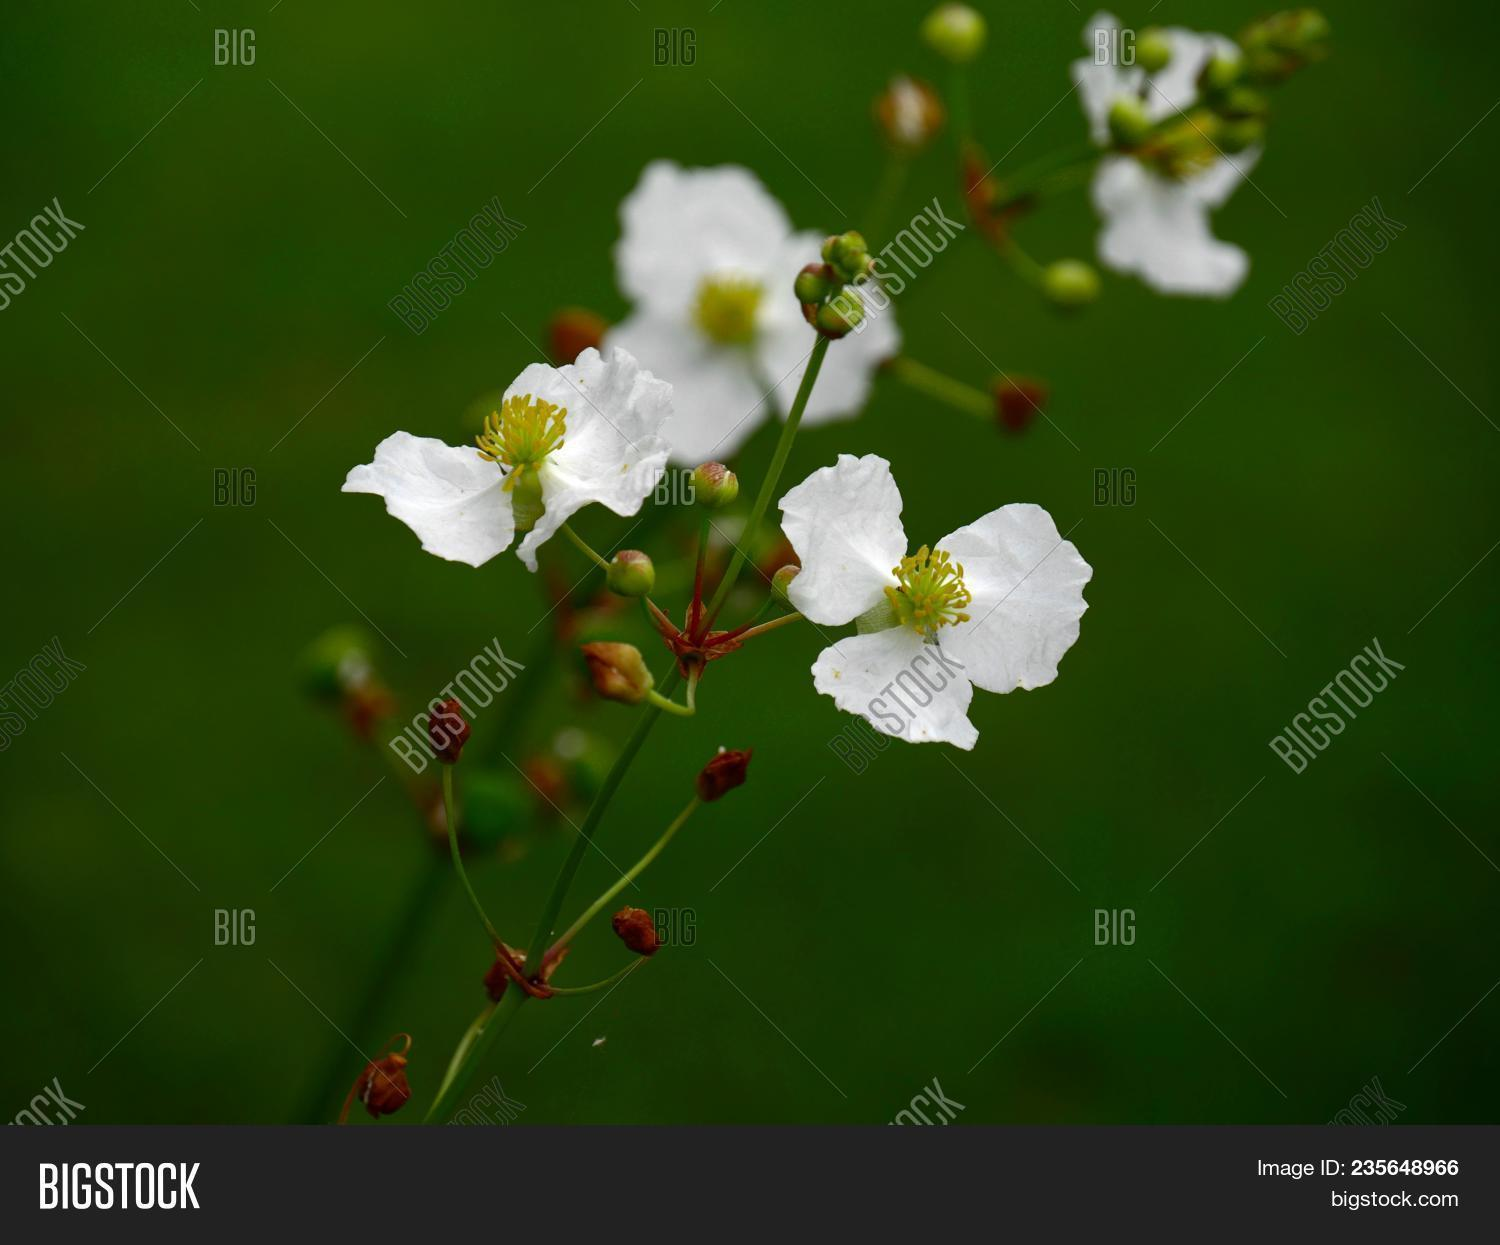 Arrowhead Flowers In A Stem, With Other Flowers In Blurry Background A Stem Loaded With